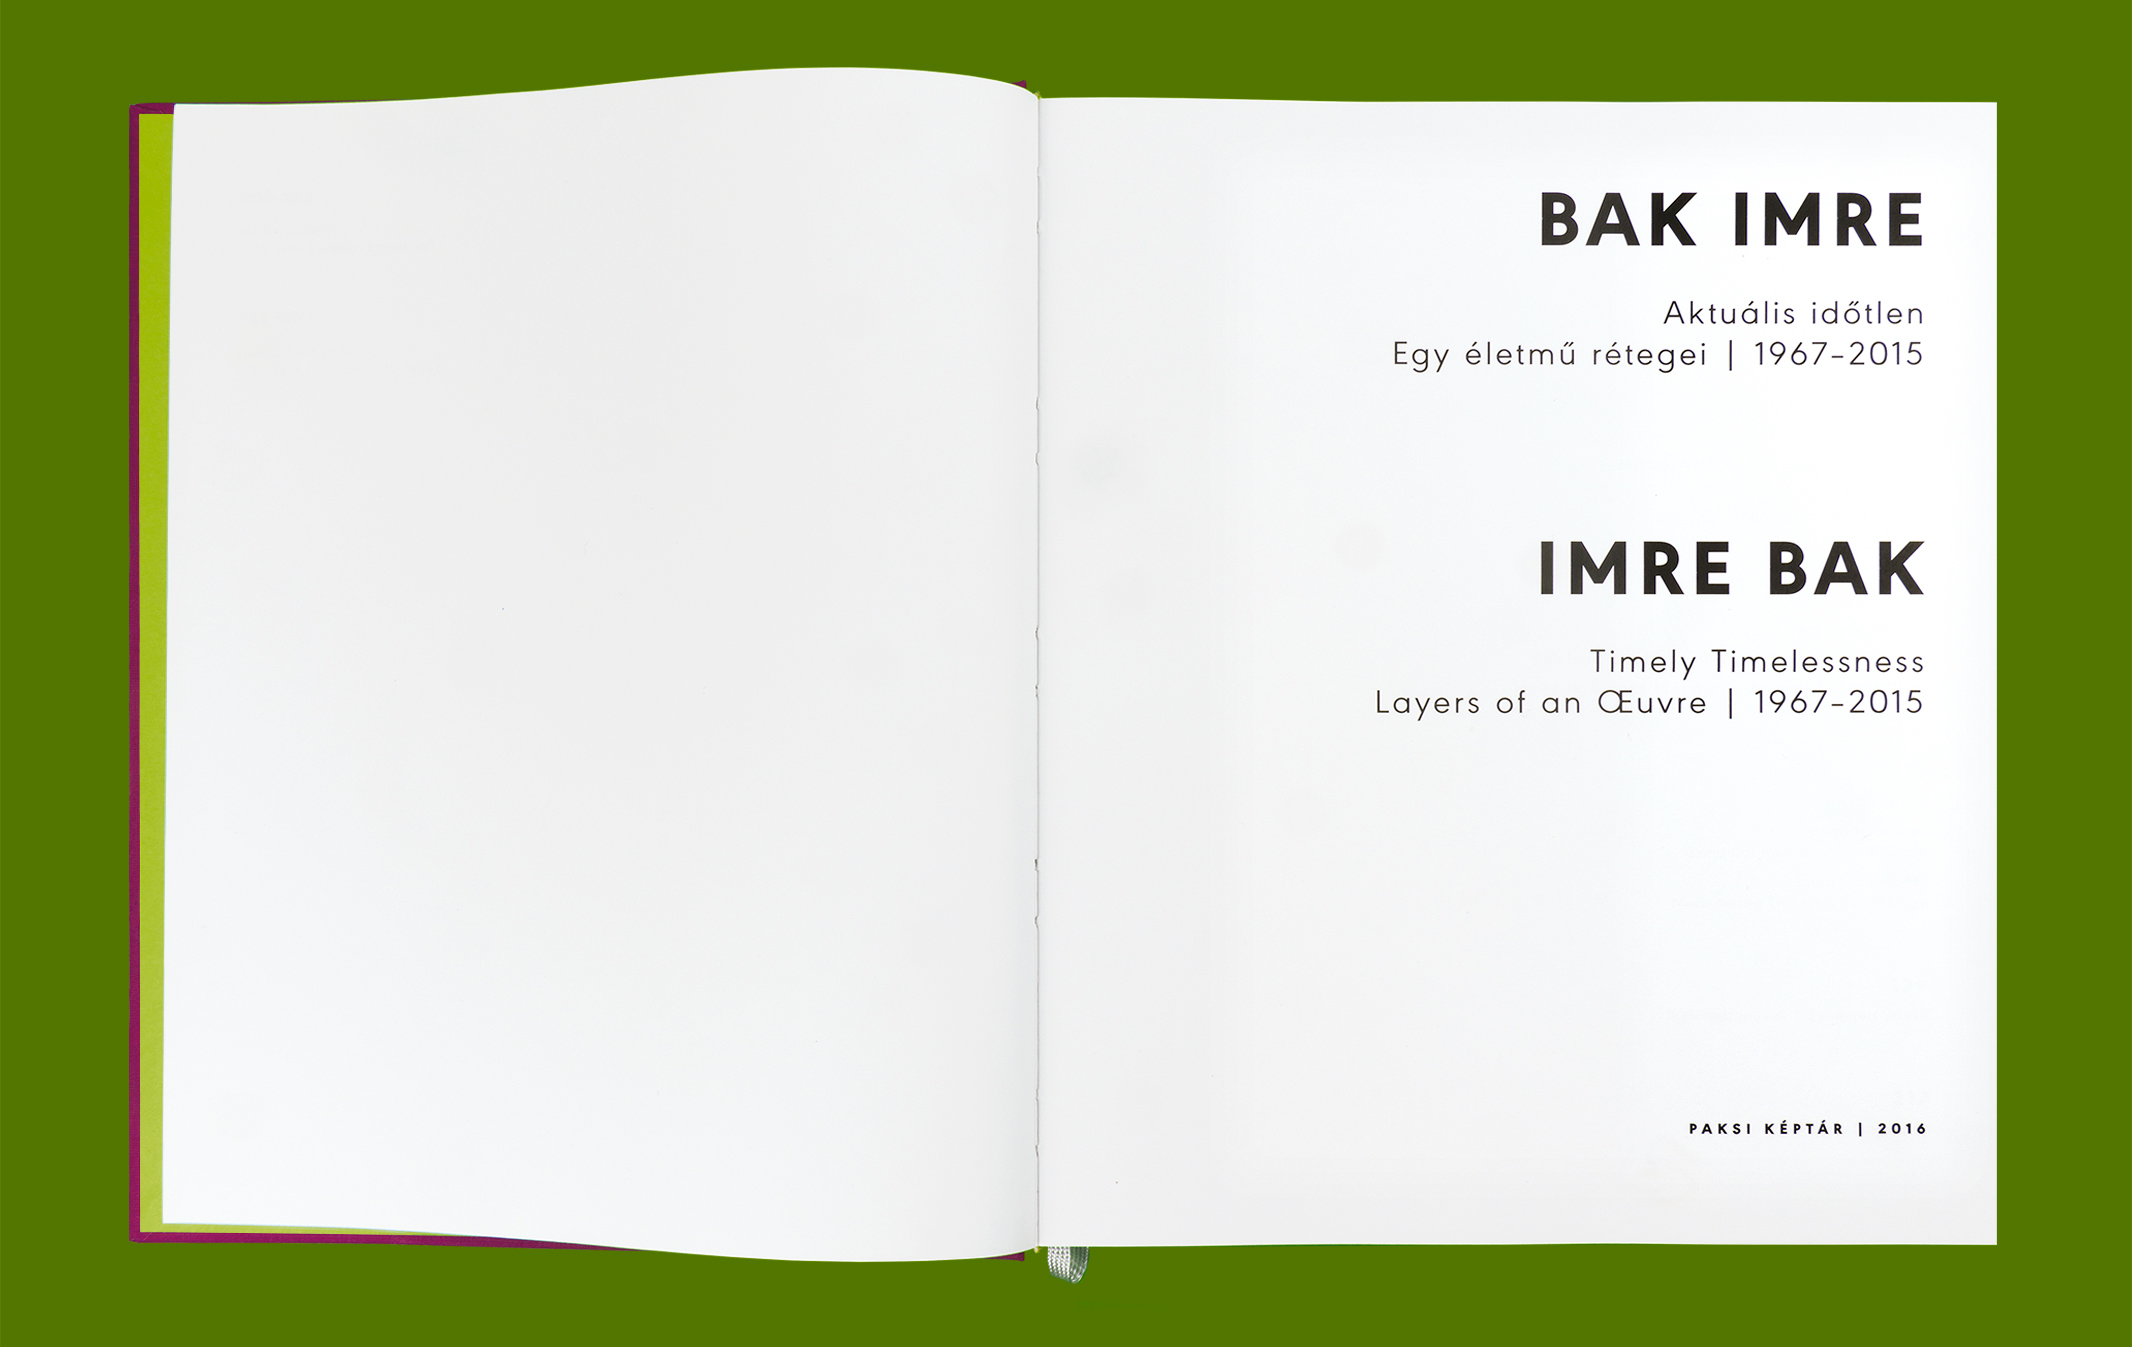 bak-imre-book-pages-11